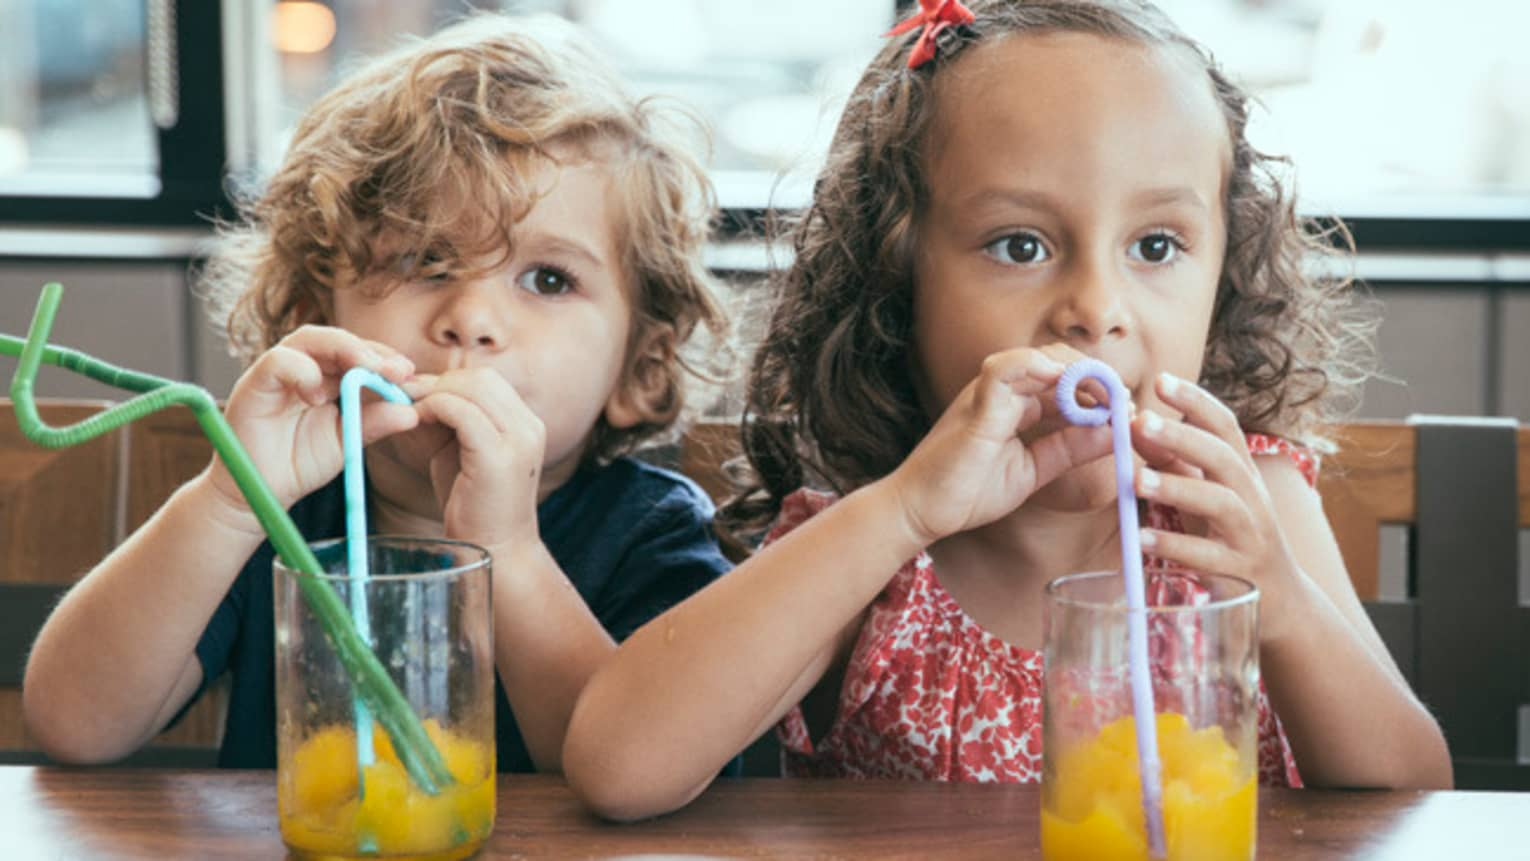 Two small children with curly hair sit side-by-side drinking juice with swirly straws at Club 760